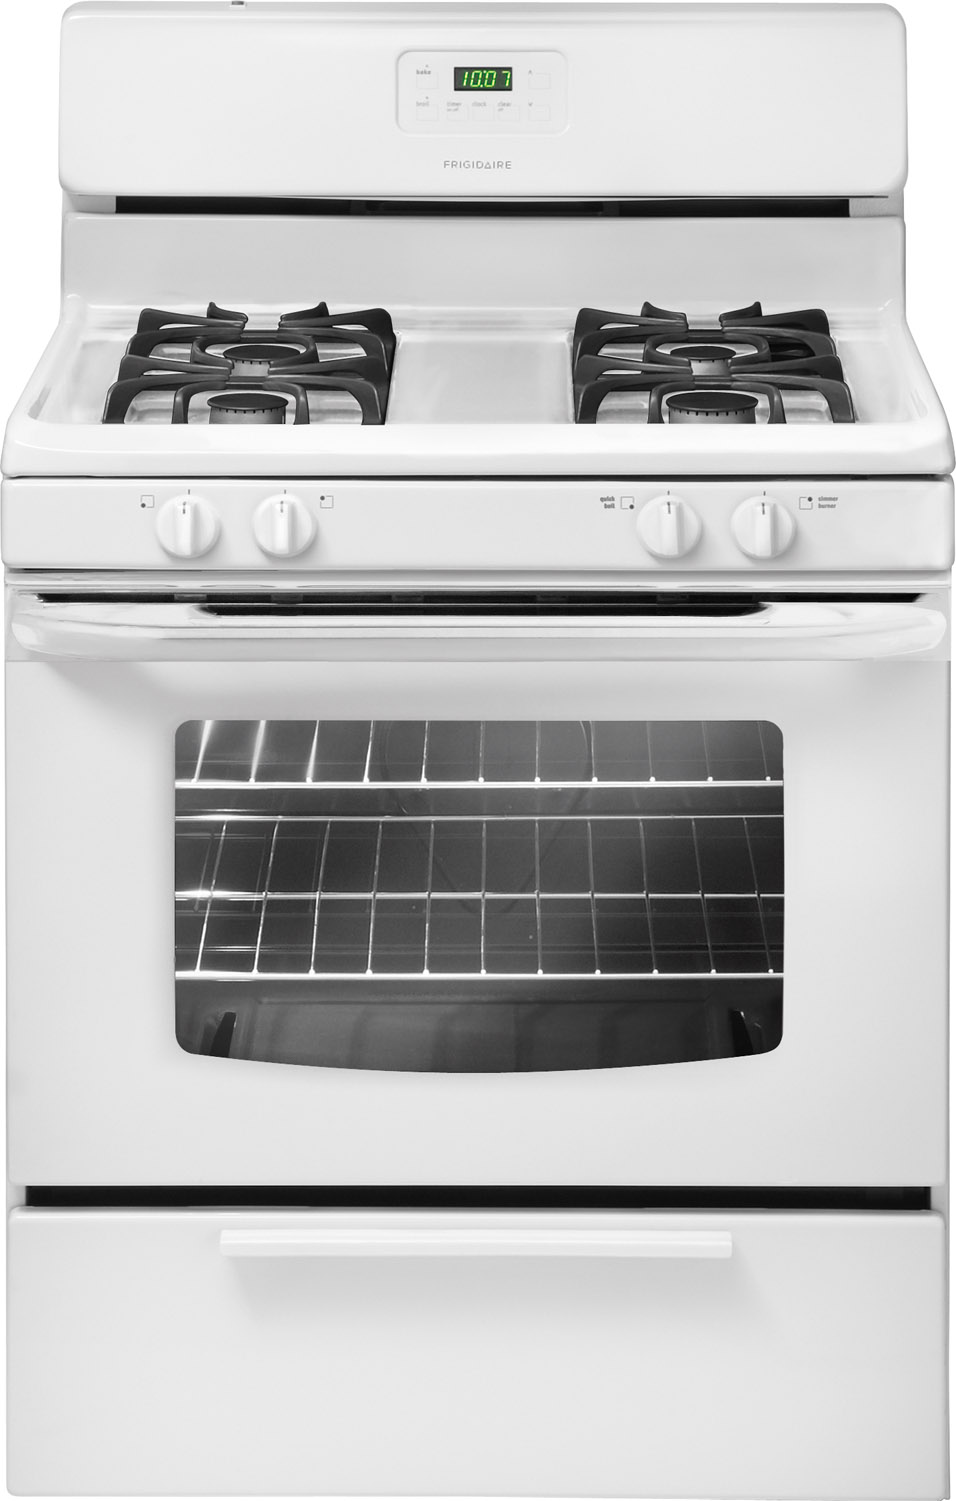 Frigidaire Range/Stove/Oven Model FFGF3017LWD Parts